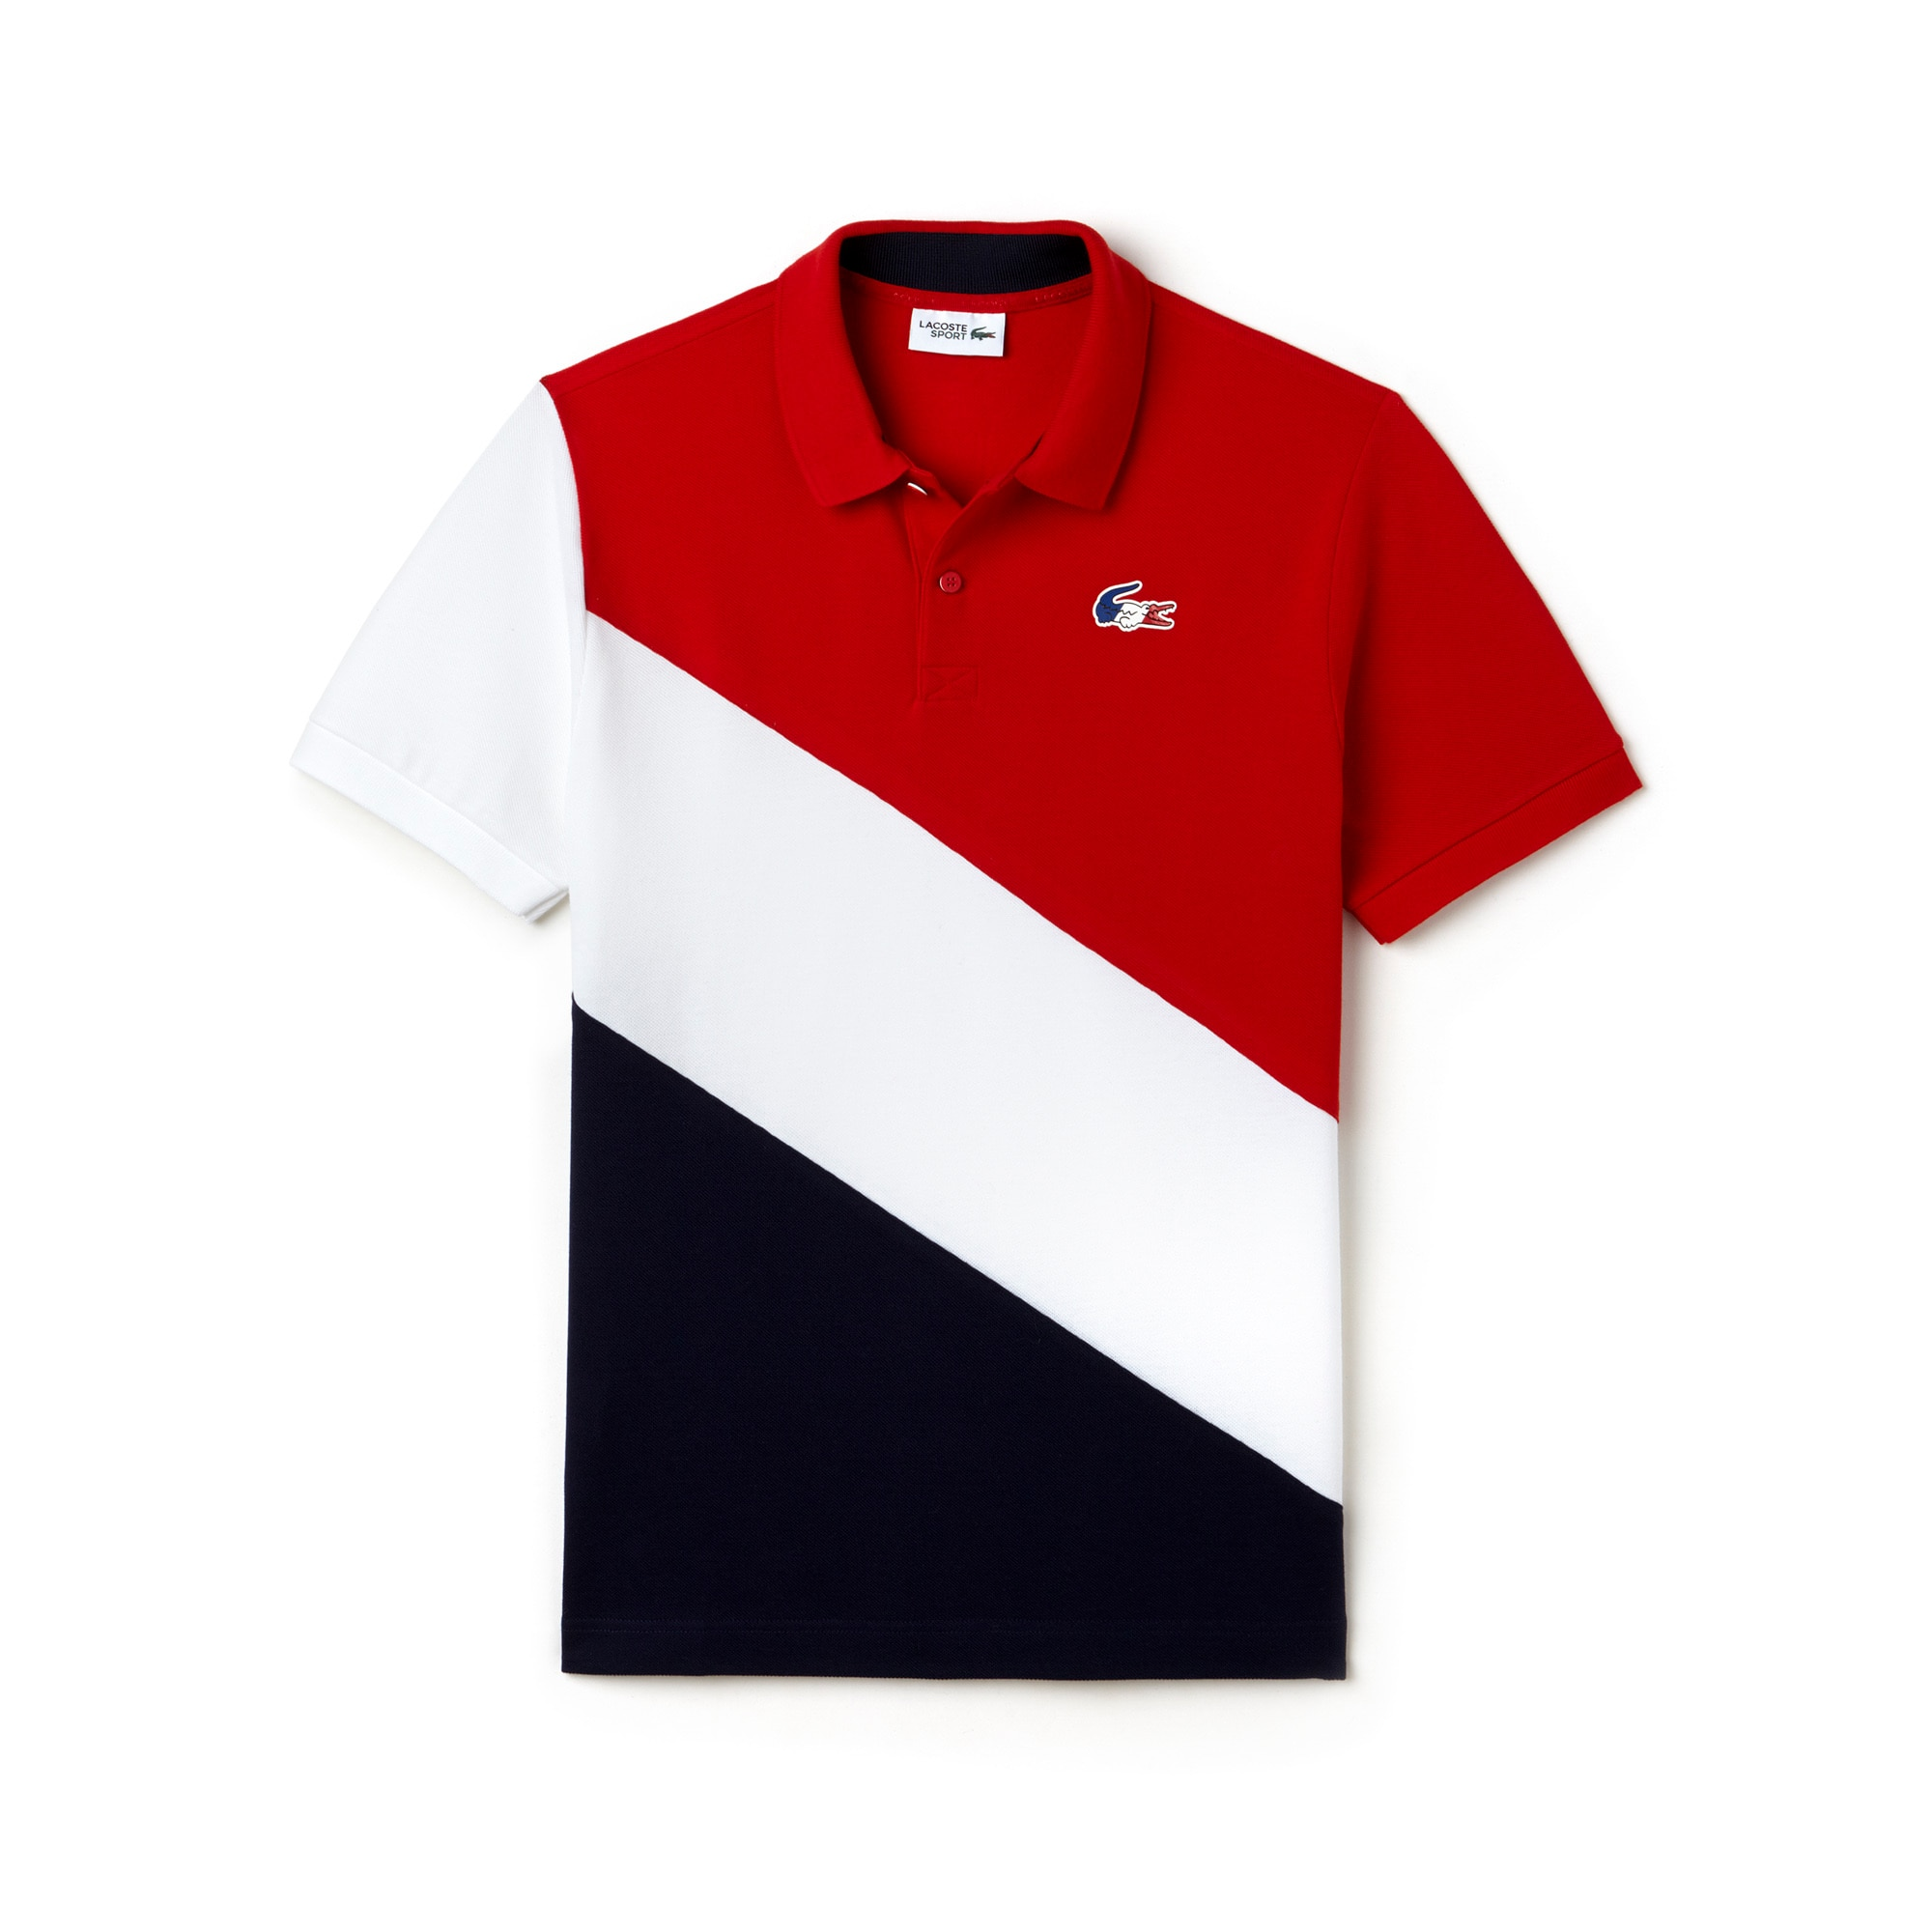 Men's Lacoste FRENCH SPORTING SPIRIT Edition Colorblock Petit Piqué Polo